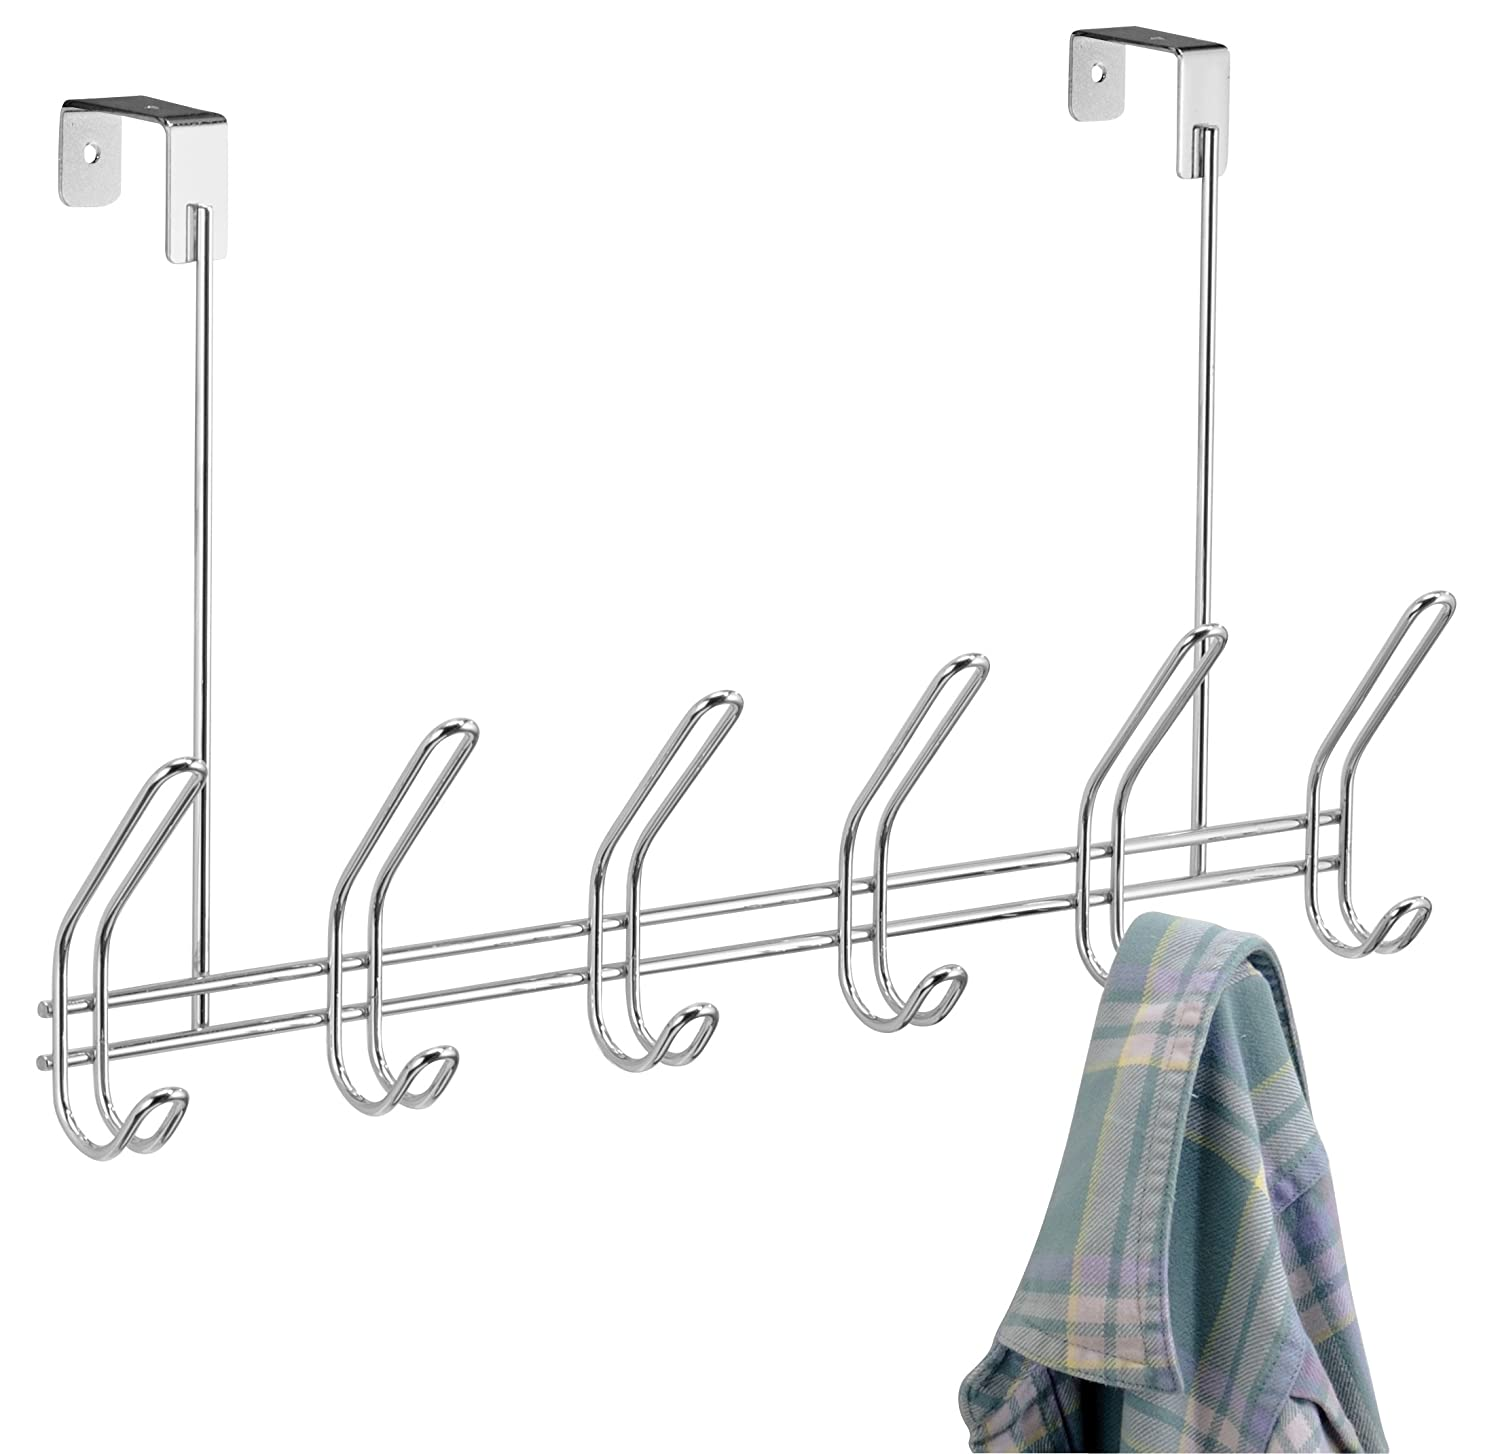 Amazon.com: InterDesign Classico Over Door Organizer Hooks U2013 6 Hook Storage  Rack For Coats, Hats, Robes Or Towels, Chrome: INTERDESIGN: Home U0026 Kitchen